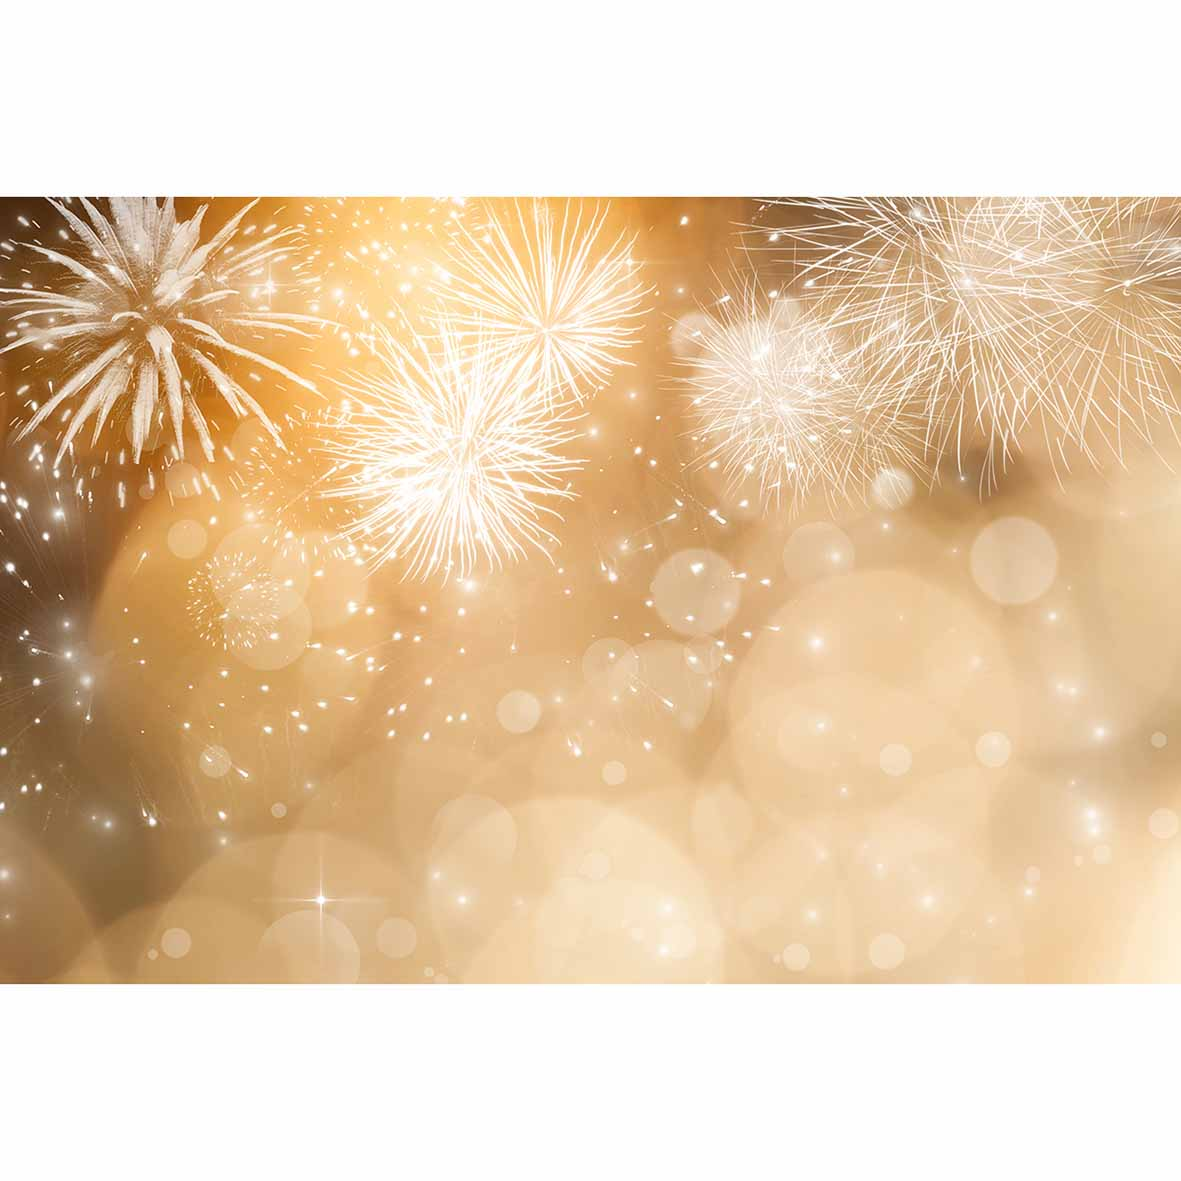 allenjoy photography backdrop bokeh fireworks festive celebration new year party background new original design for photo studio in background from consumer